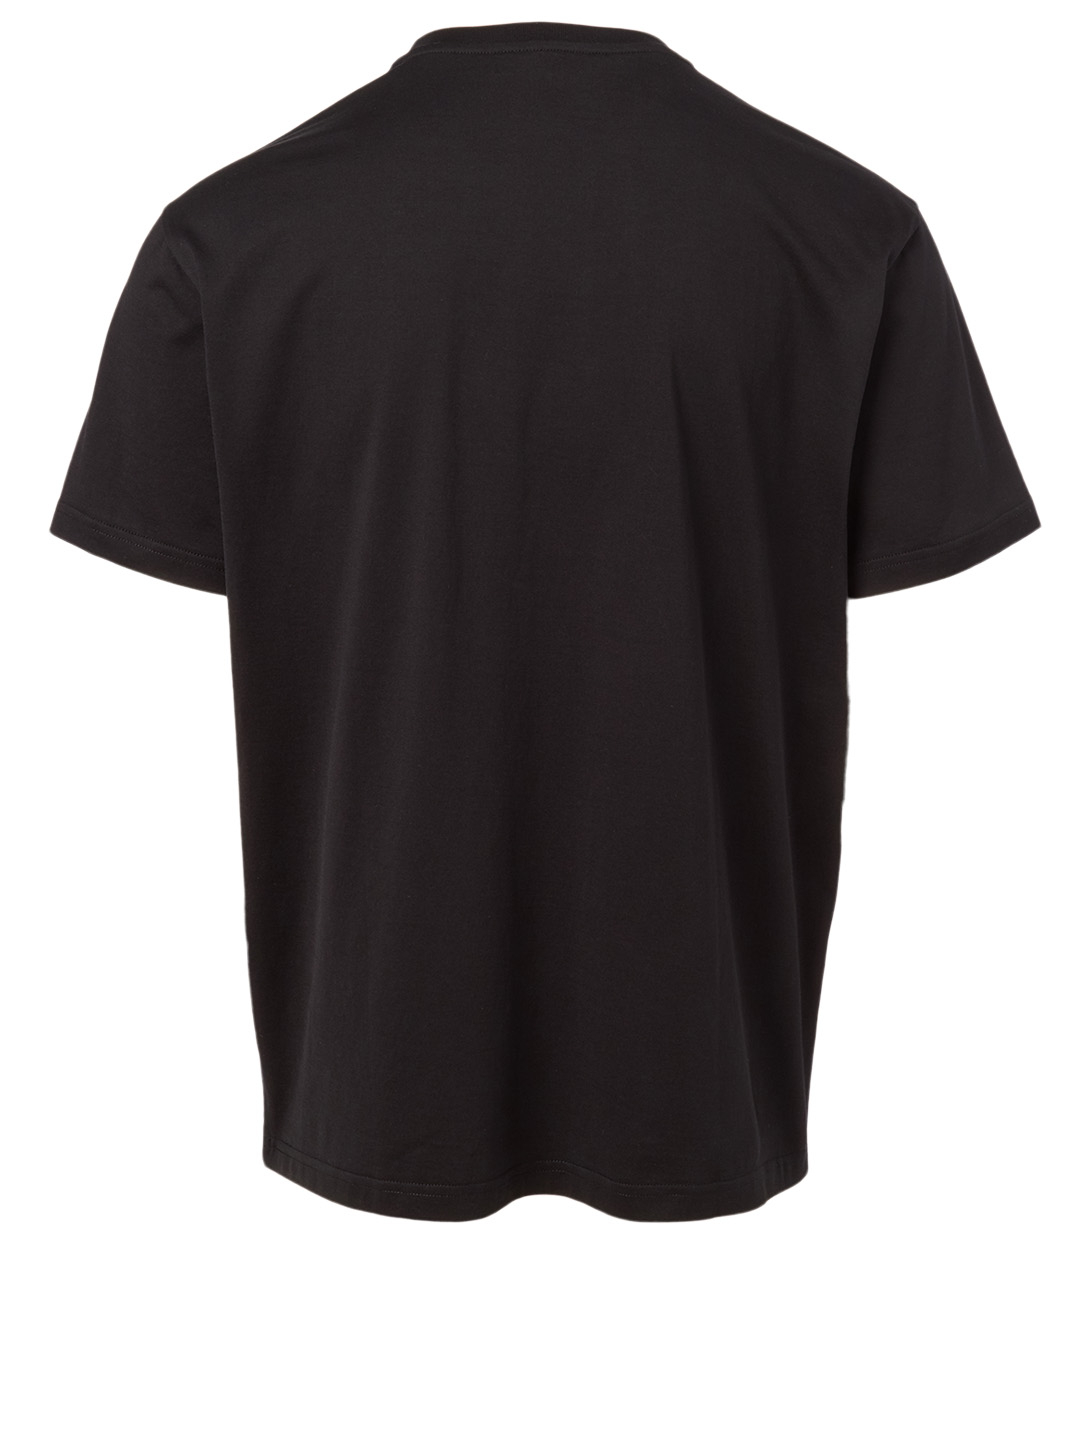 GIVENCHY Cotton Embossed Logo T-Shirt Men's Black